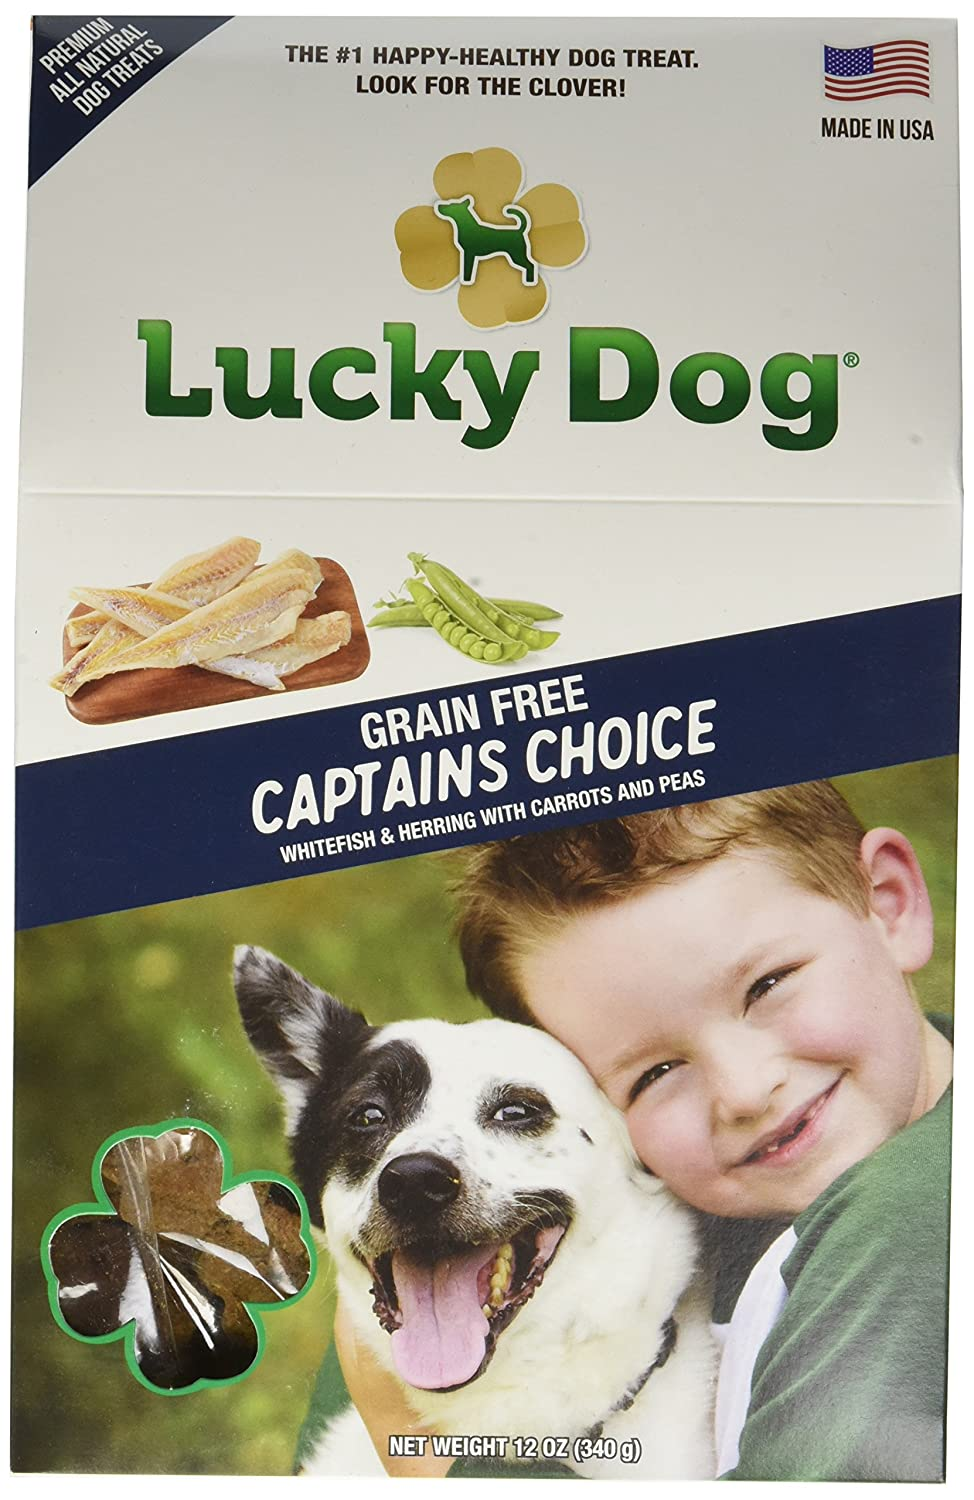 Lucky Dog 5960Ld 1 Piece Grain Free Captain'S Choice Baked Dog Biscuit, 12 Oz